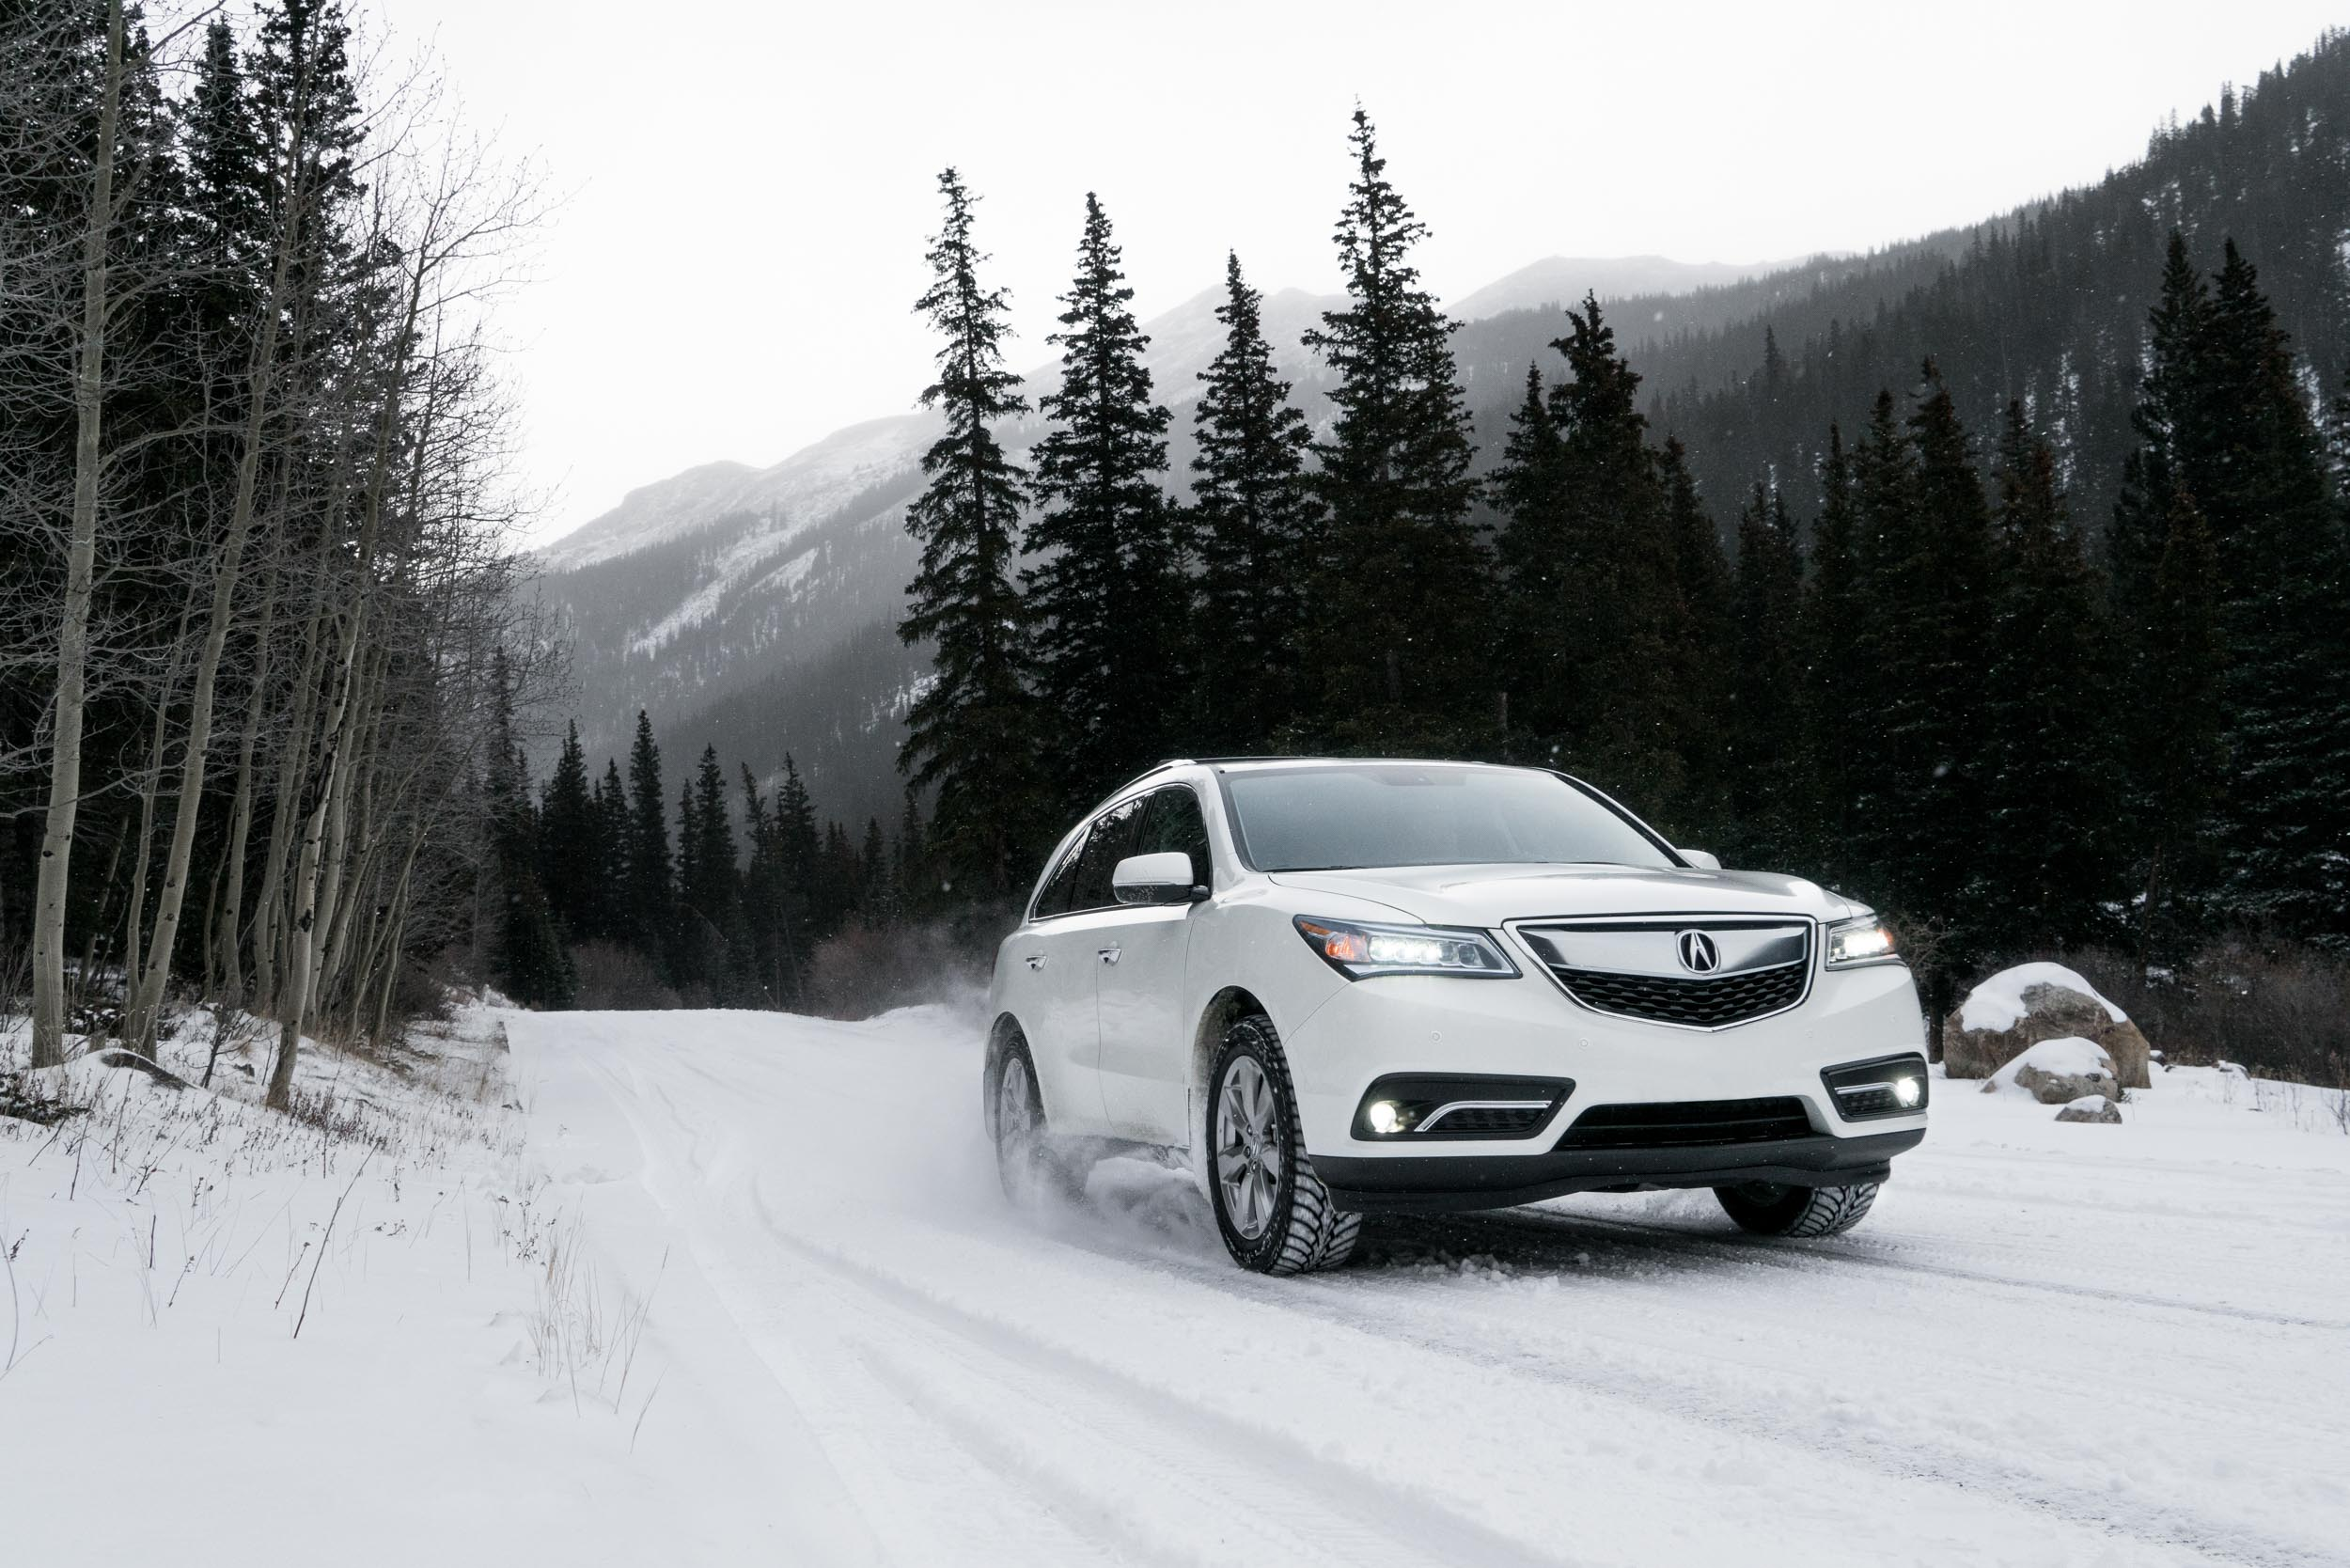 White Acura MDX drives up a snowy mountain road in Colorado